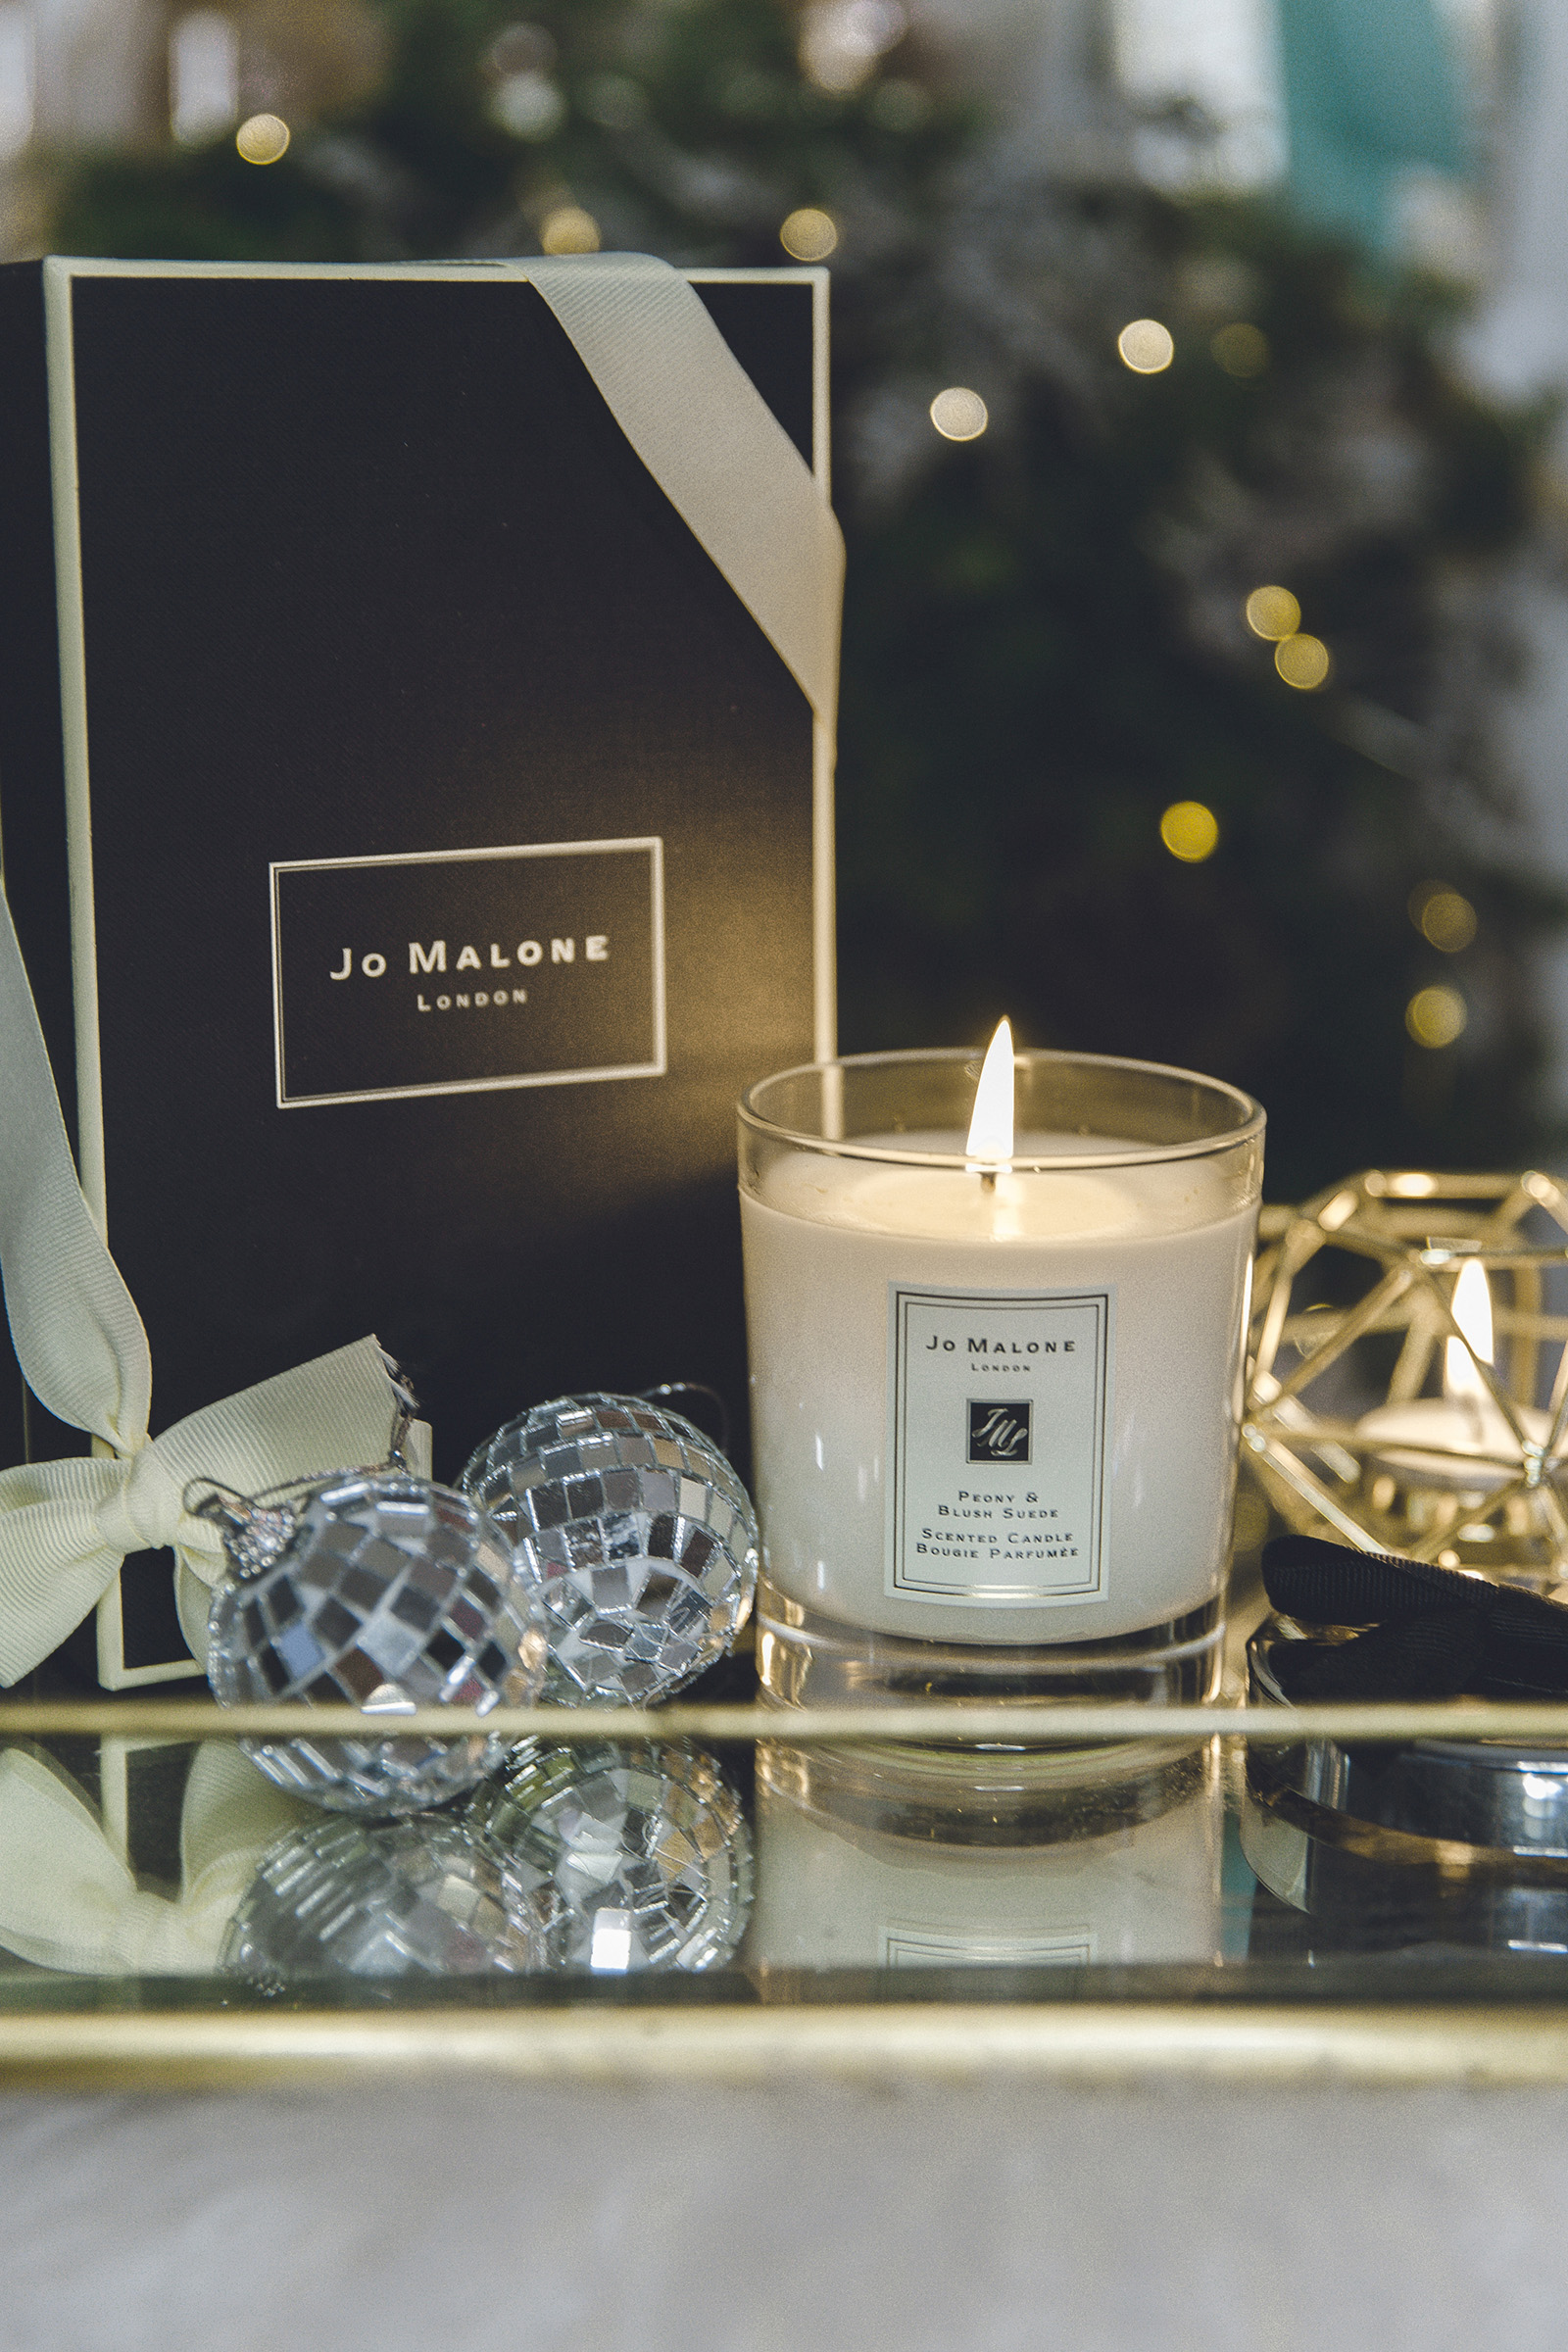 jo malone luxury candles